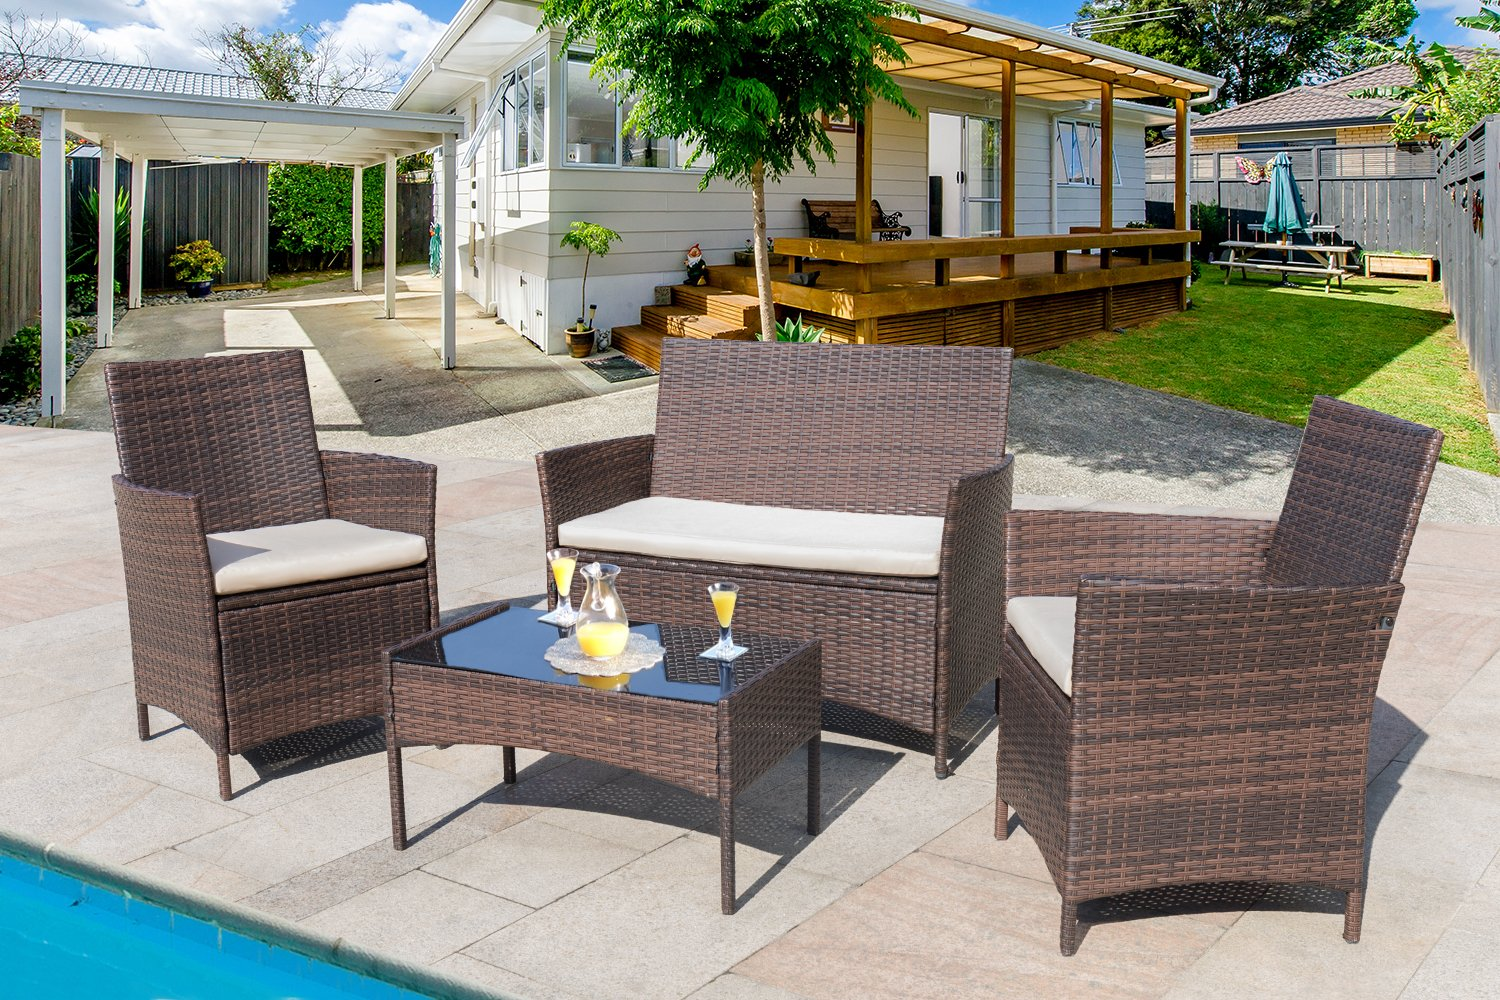 Homall 4 Pieces Outdoor Patio Furniture Sets Rattan Chair